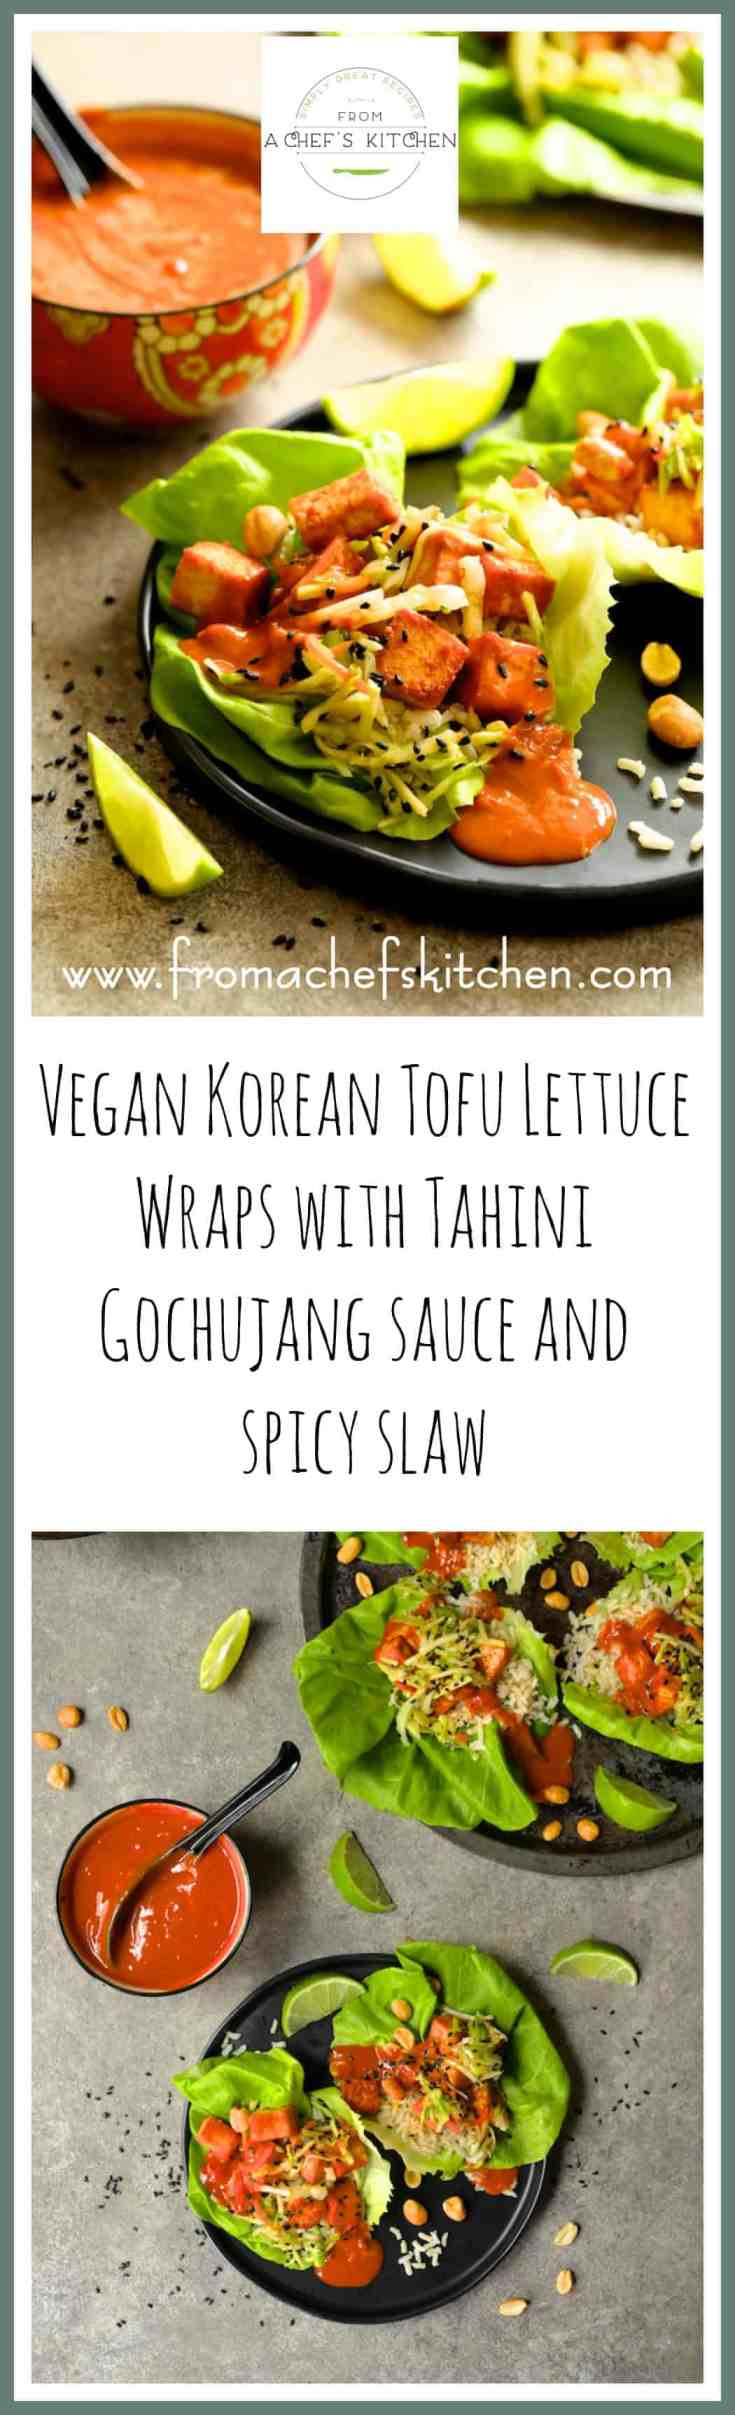 Vegan Korean Tofu Lettuce Wraps with Tahini Gochujang Sauce and Spicy Slaw are the fun, flavorful and healthful way to get your Korean food fix! #vegan #vegetarian #tofu #lettucewrap #tahini